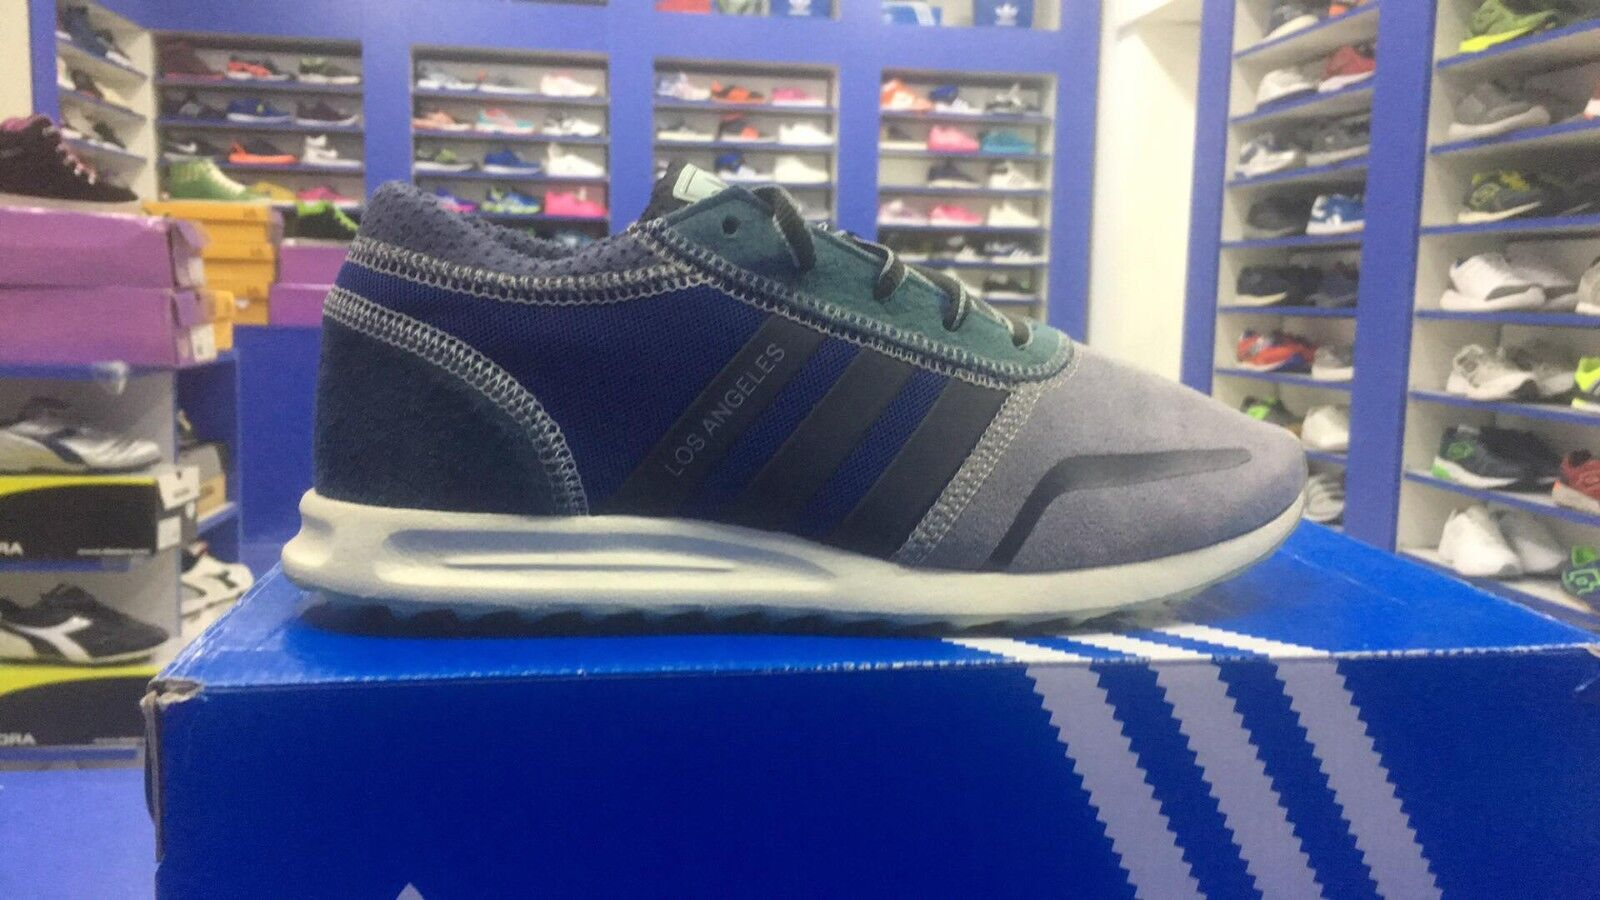 SCARPE   N. 38 2/3 /2   ADIDAS LOS ANGELES  SNEAKERS  BASSE   S42022 The latest discount shoes for men and women